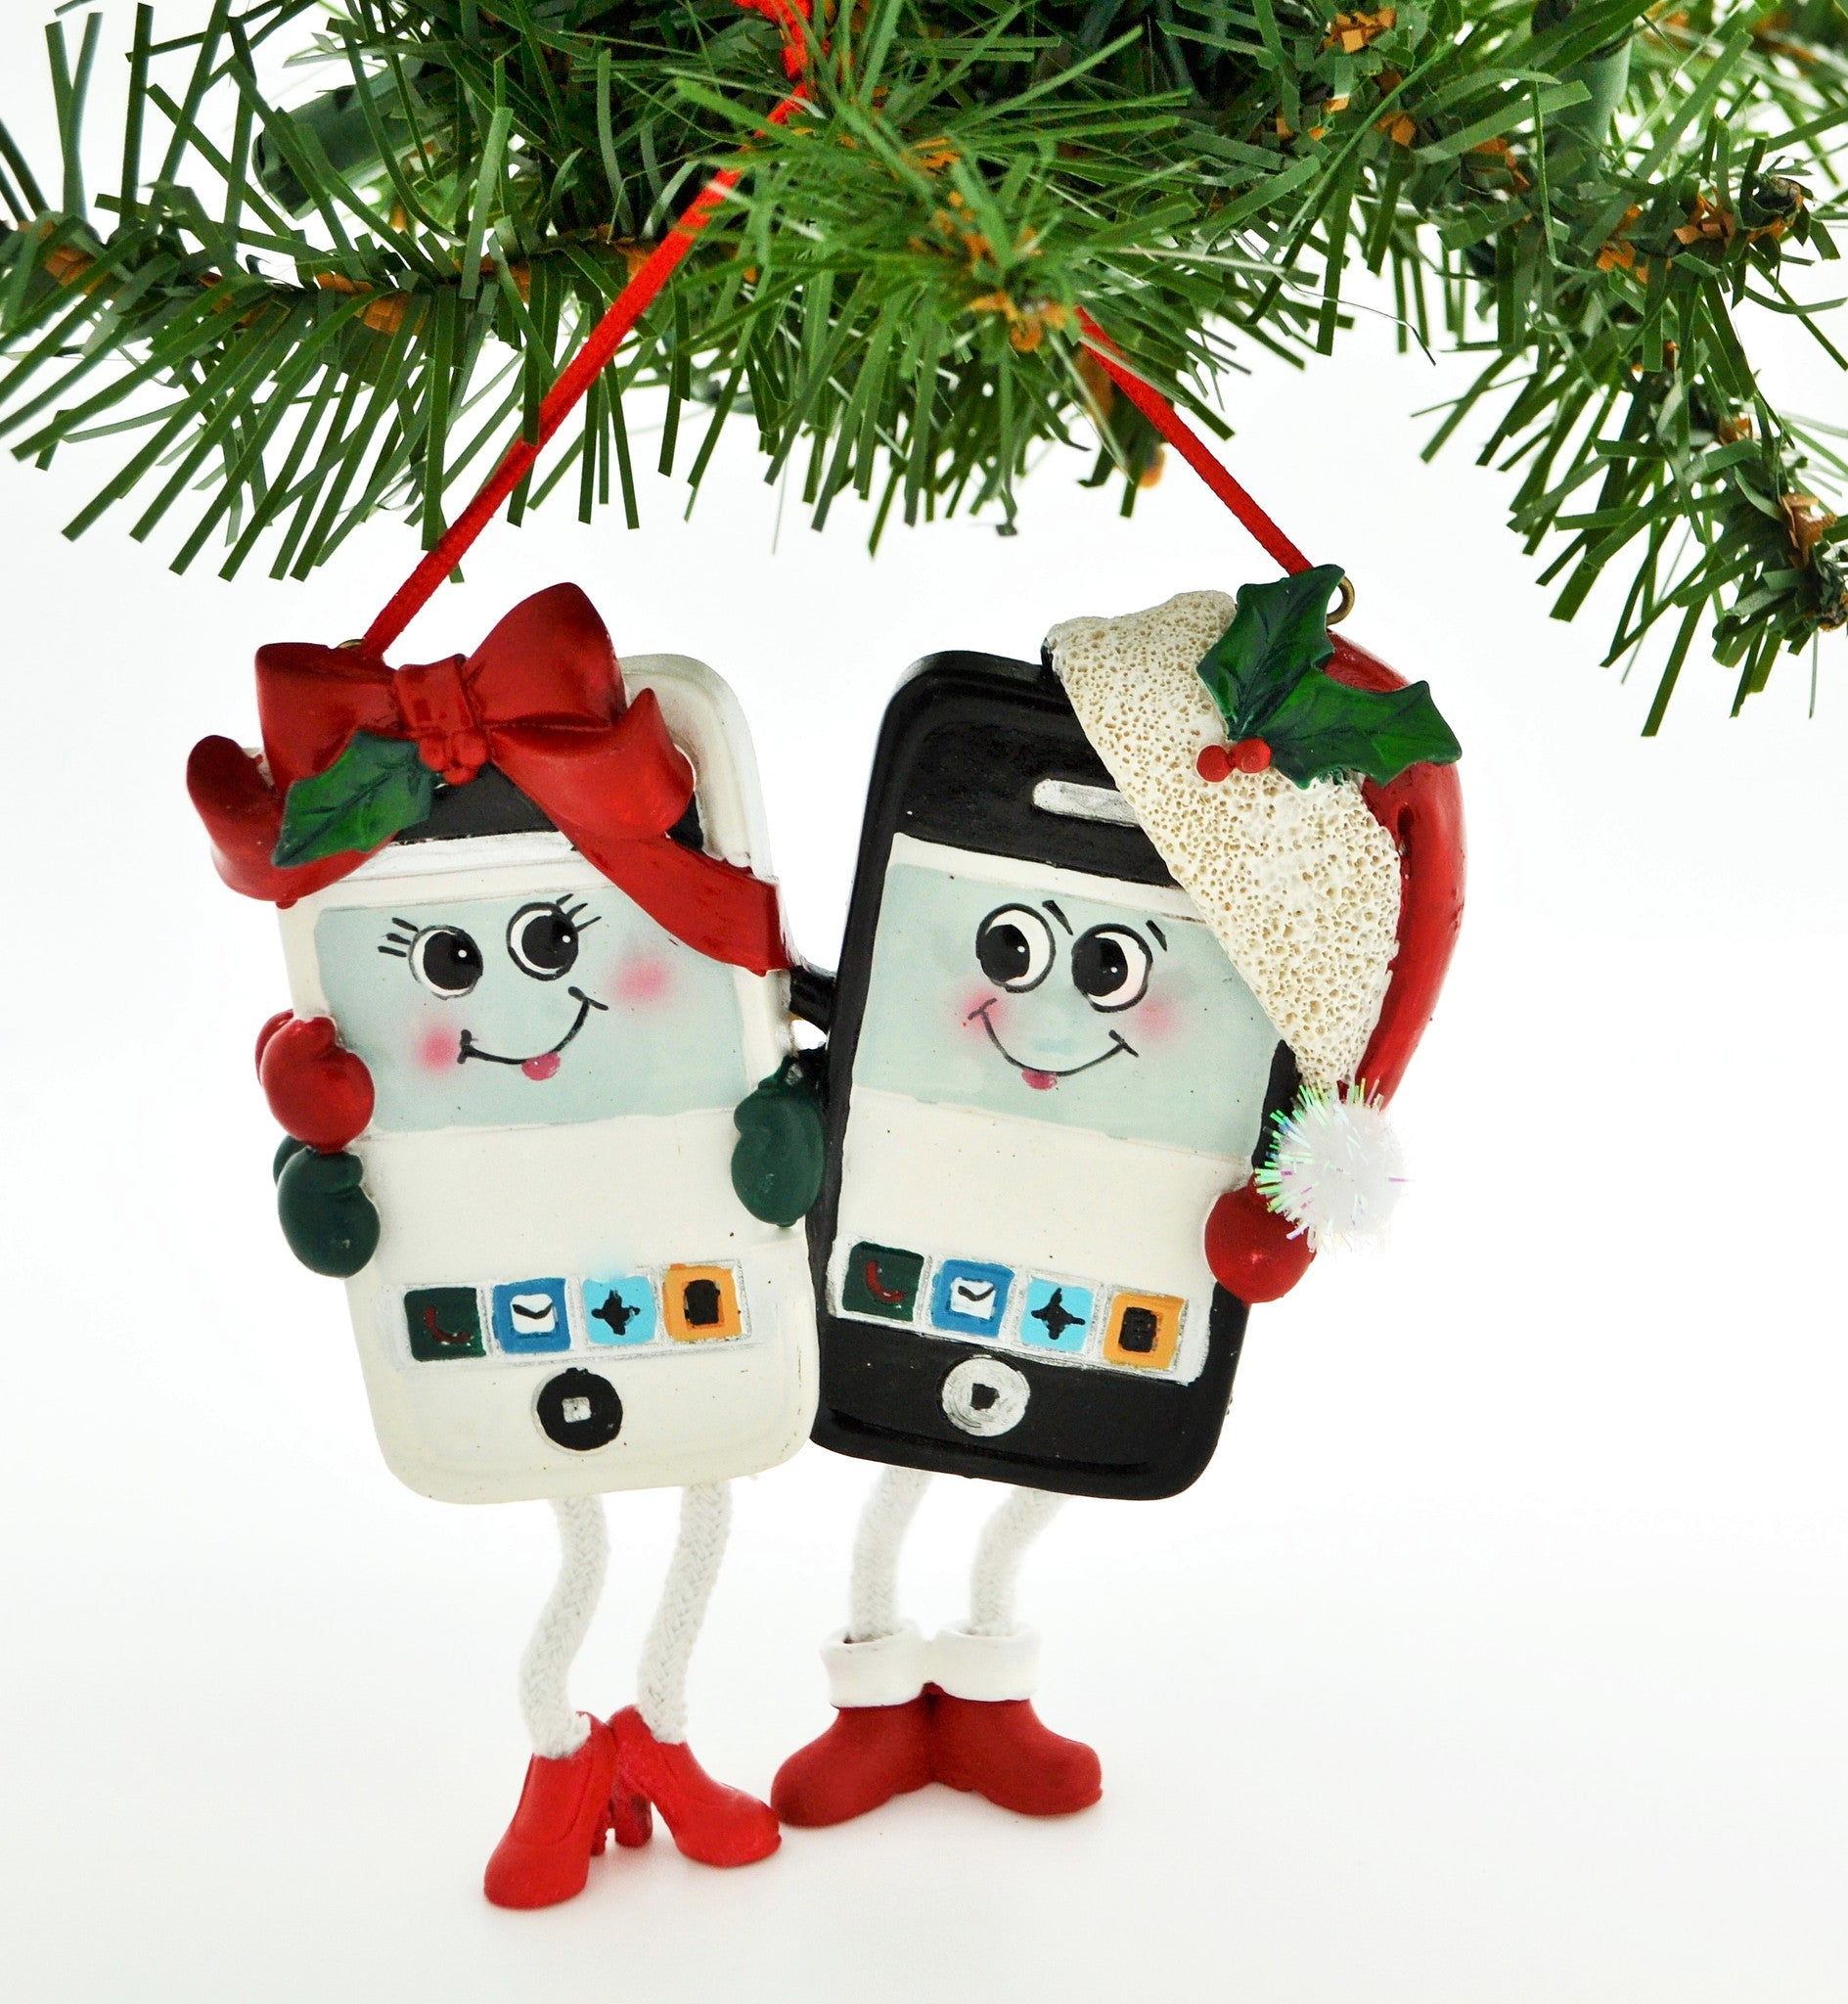 Personalized couples christmas ornaments - Personalized Christmas Ornament Cell Phone Couple